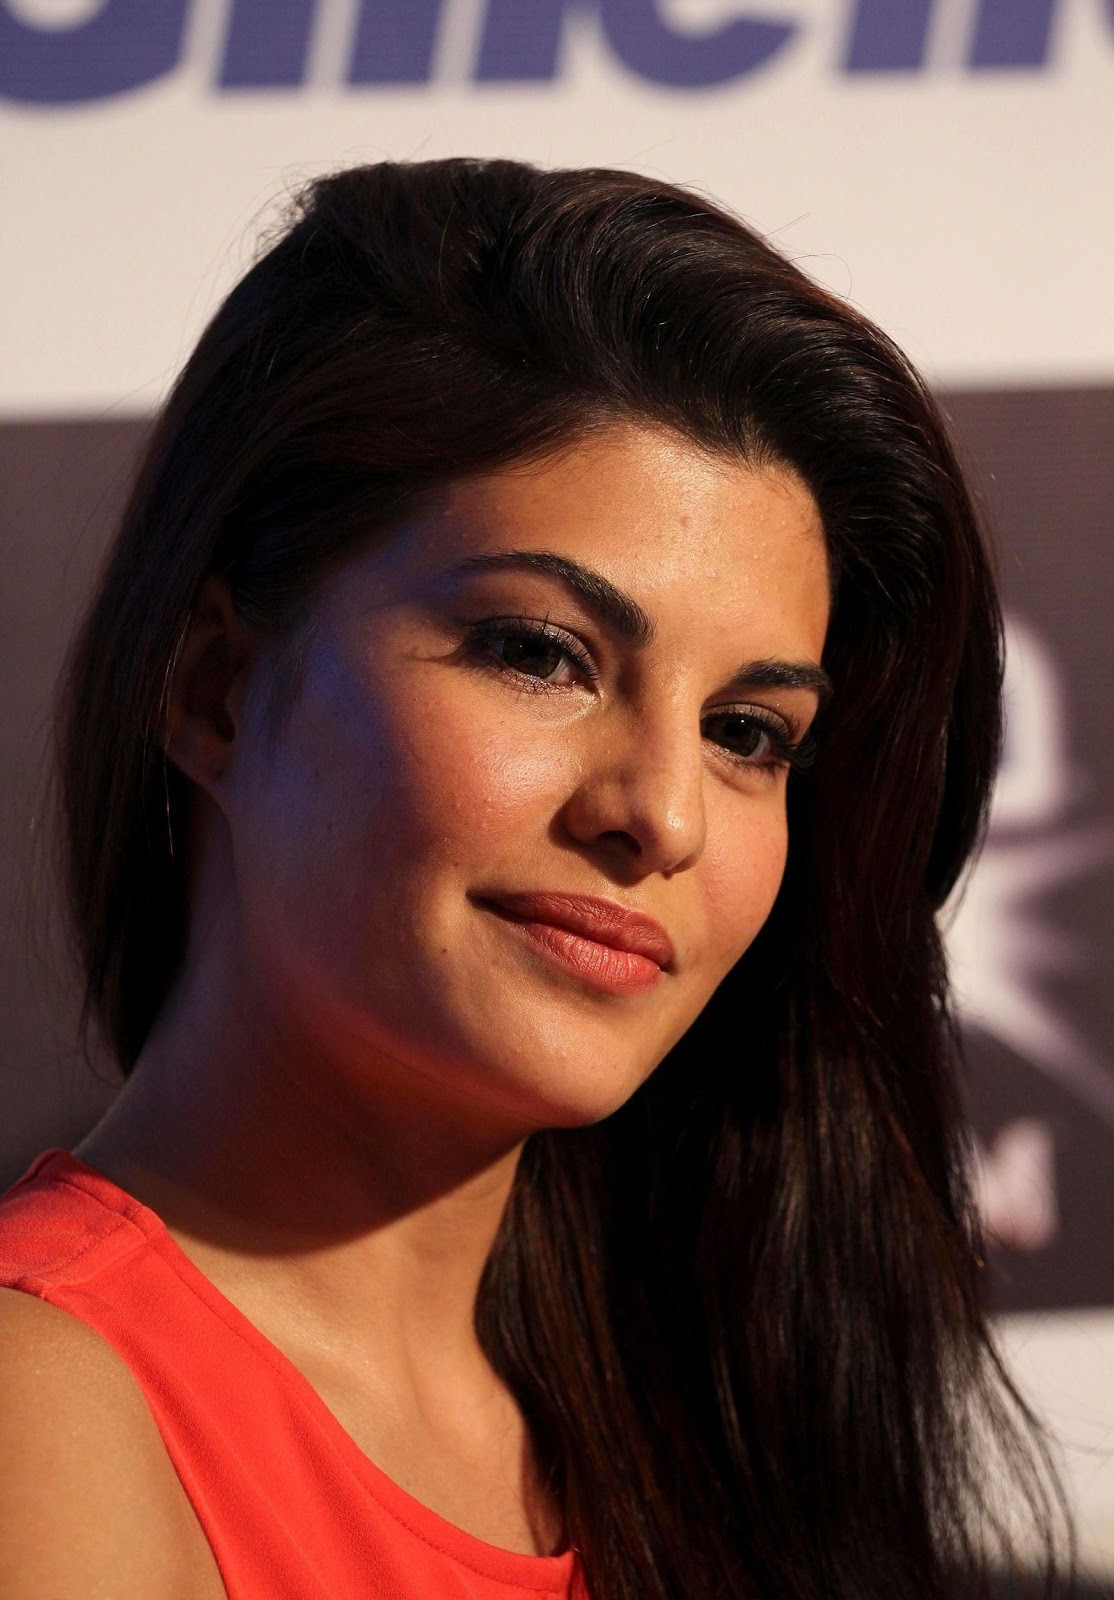 'Brothers' actress Jacqueline Fernandez at launch of Gillette New Range in Photos